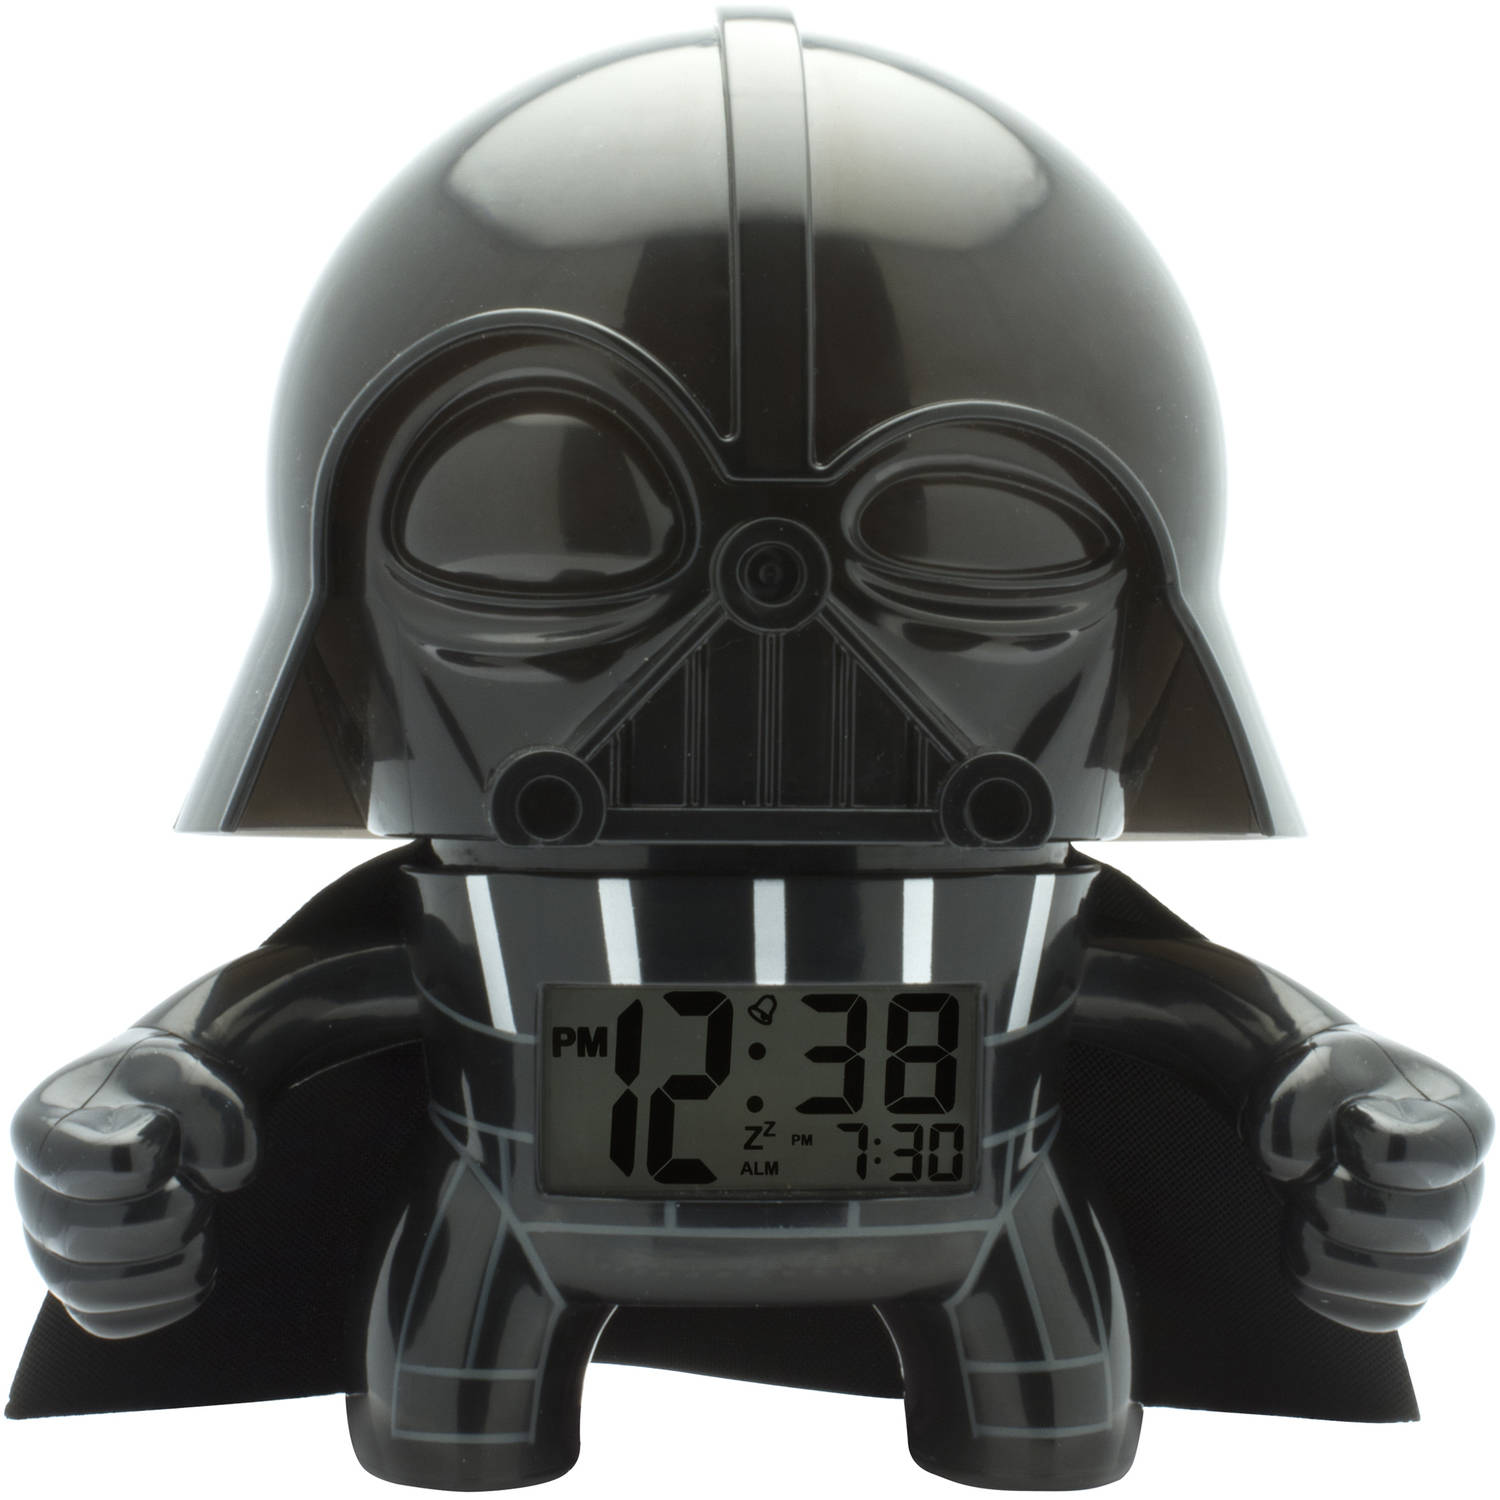 BULBBOTZ STAR WARS DARTH VADER KIDS LIGHT UP ALARM CLOCK